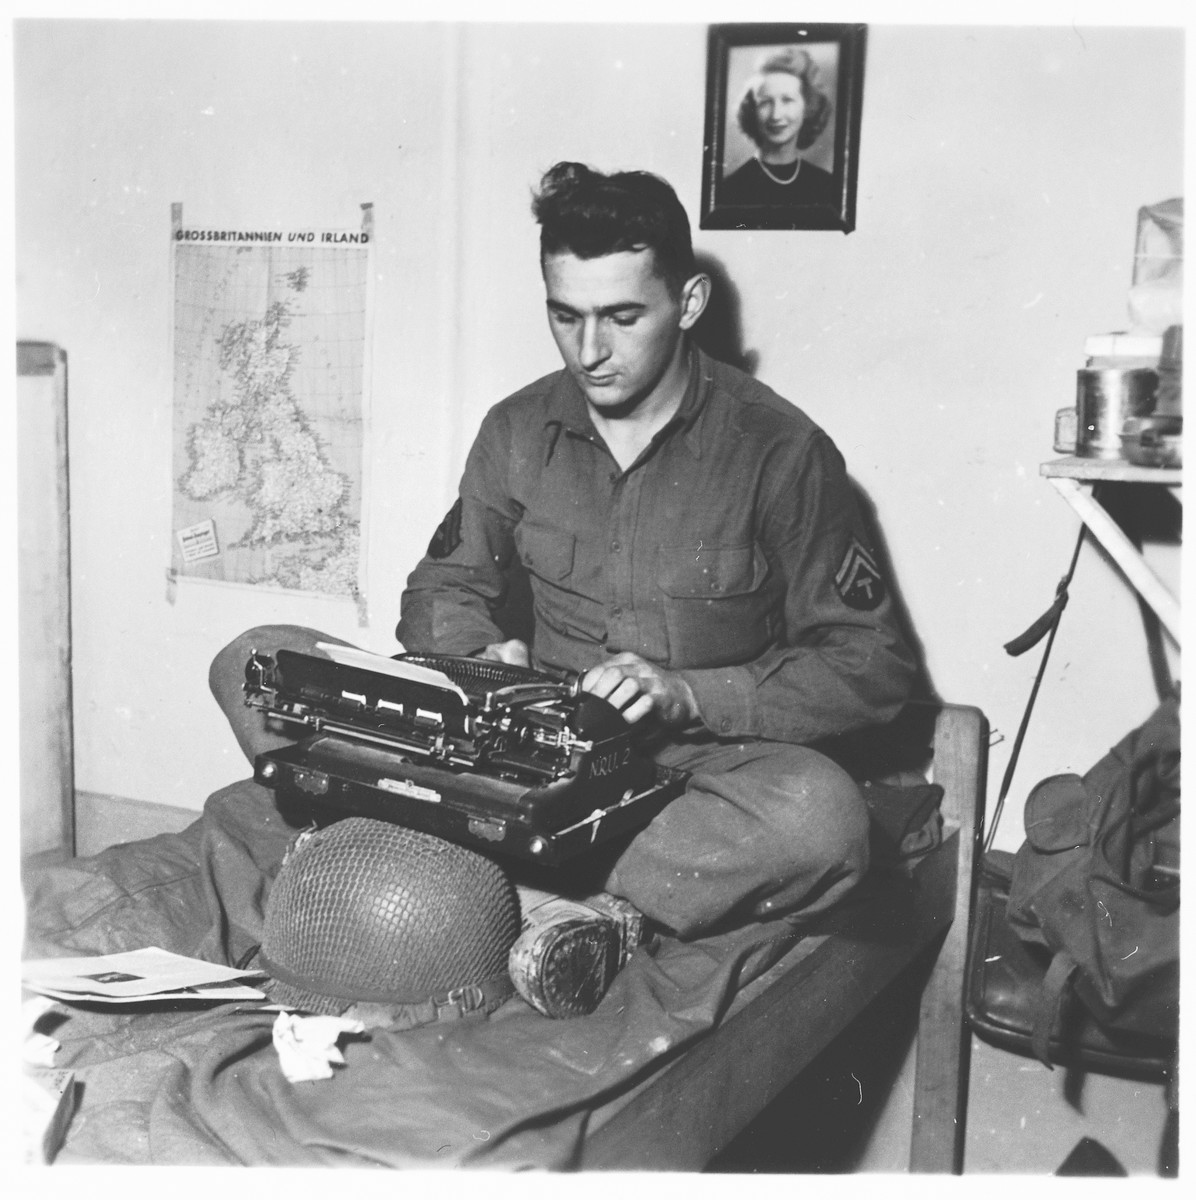 U.S. combat photographer J Malan Heslop types photo captions on a typewriter in his room.